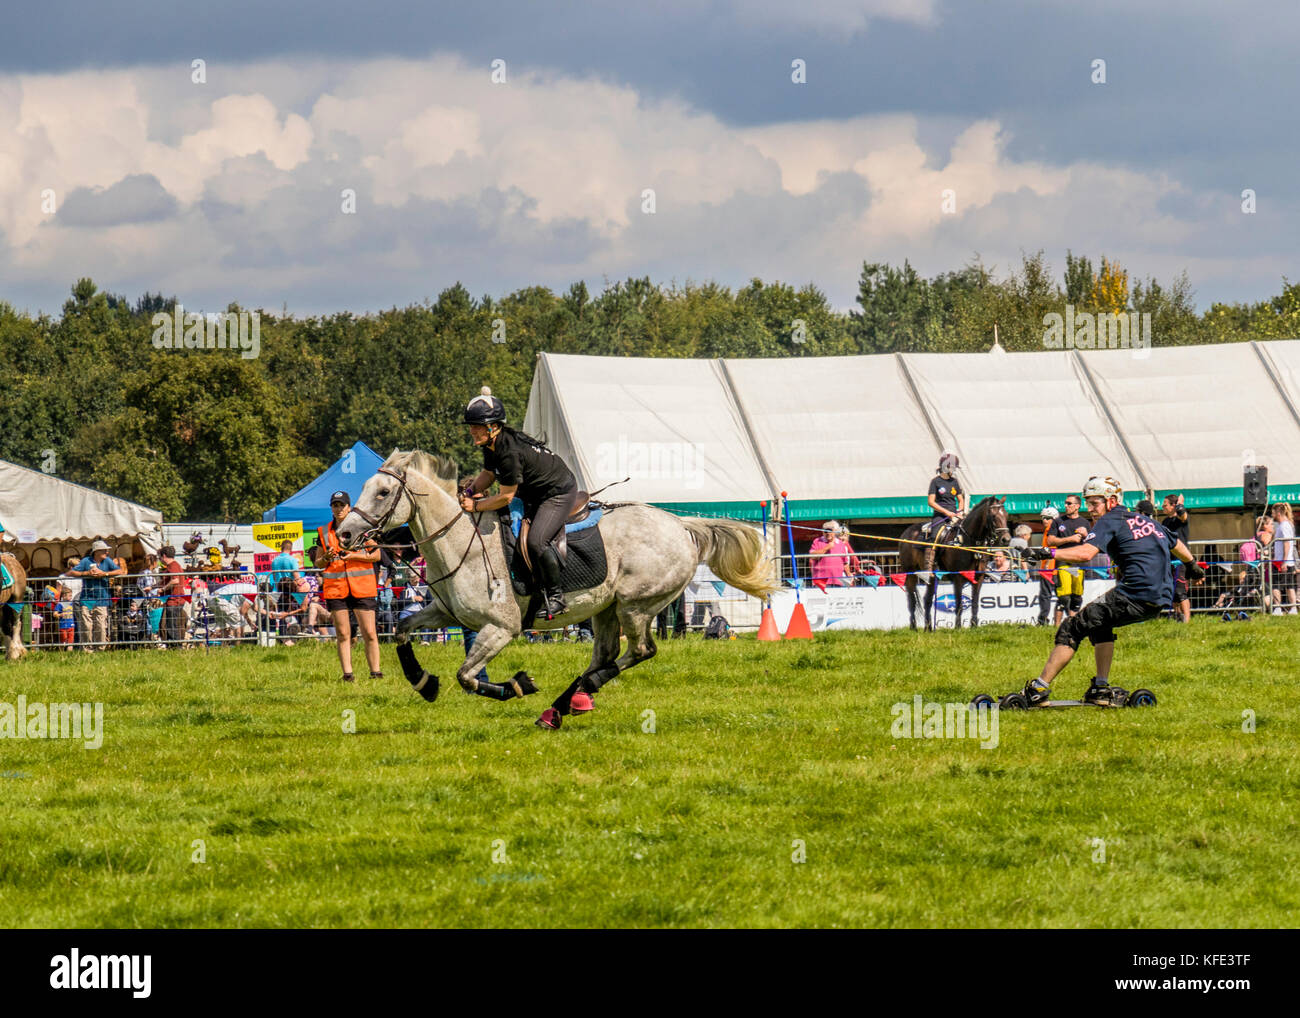 Horseboarding at Cheshire and Country fair Tabley Showground Cheshire UK Stock Photo